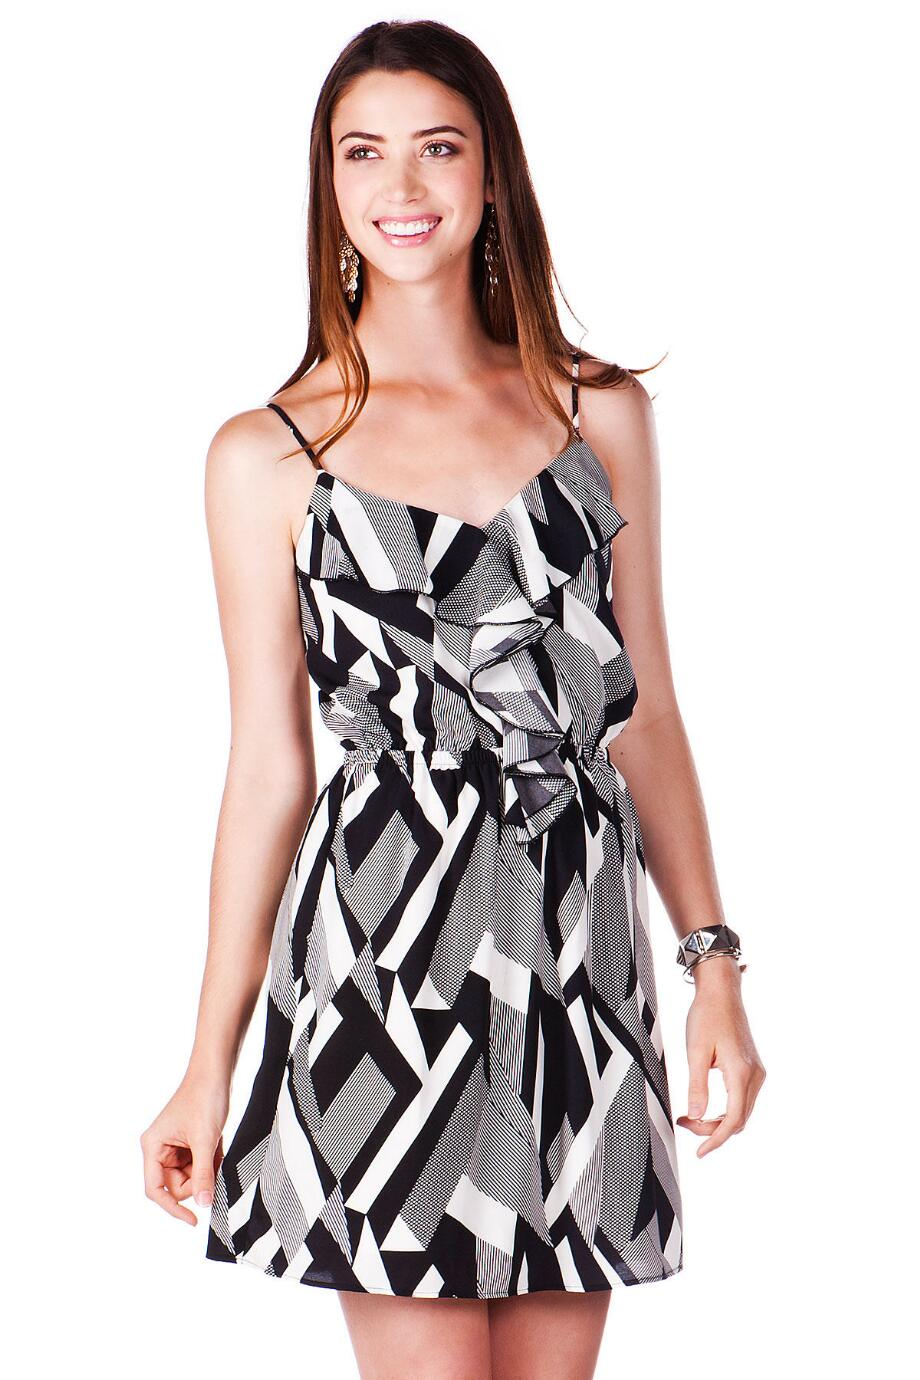 La Vista Printed Dress